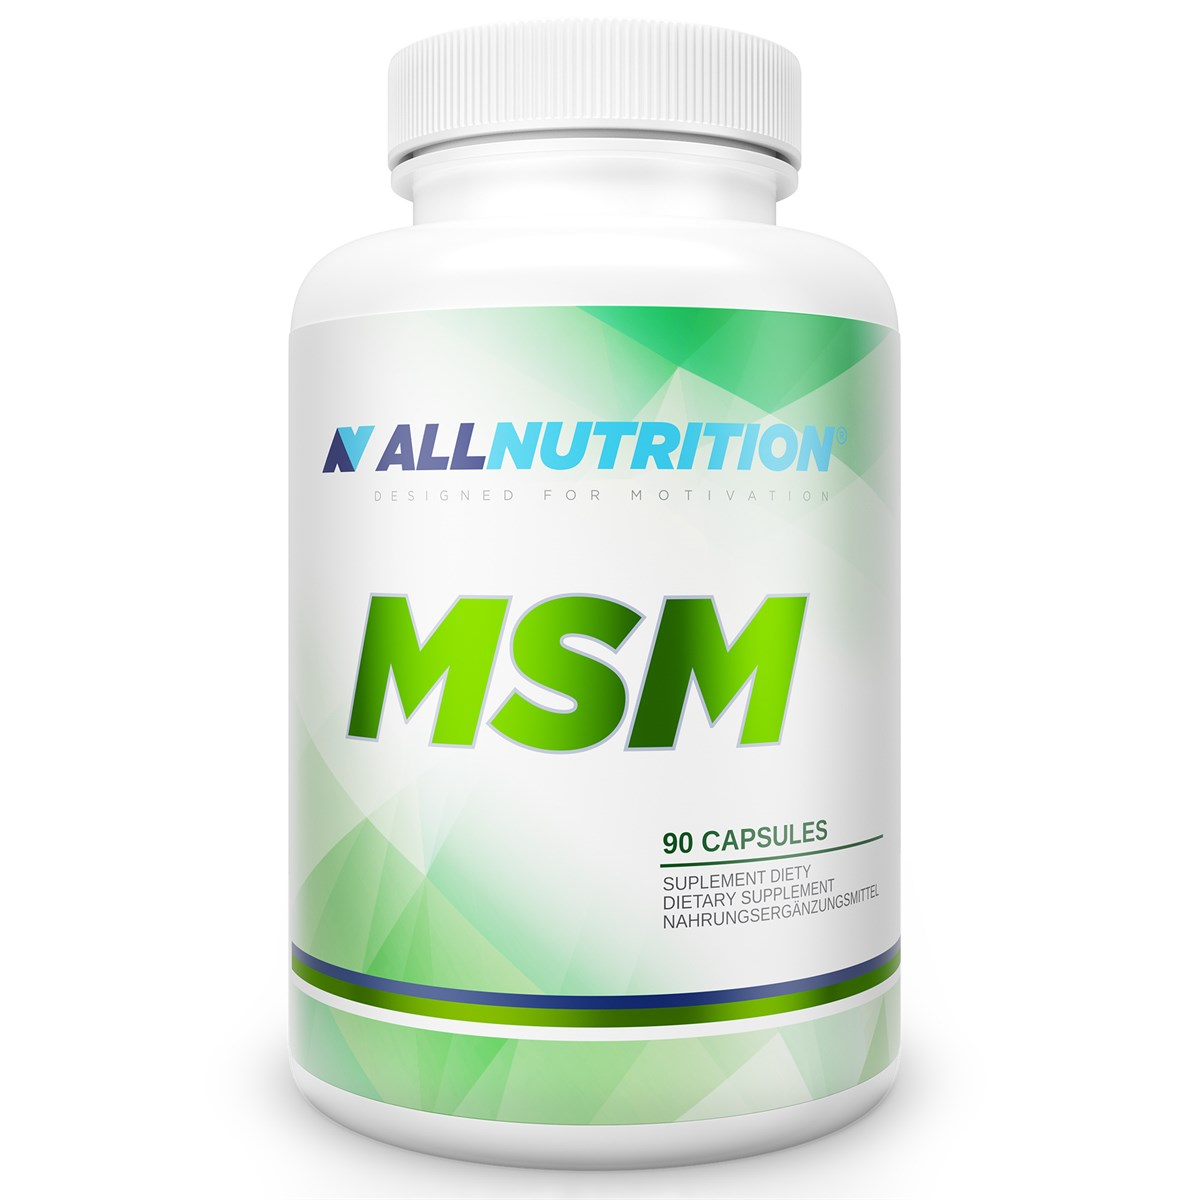 ALLNUTRITION MSM